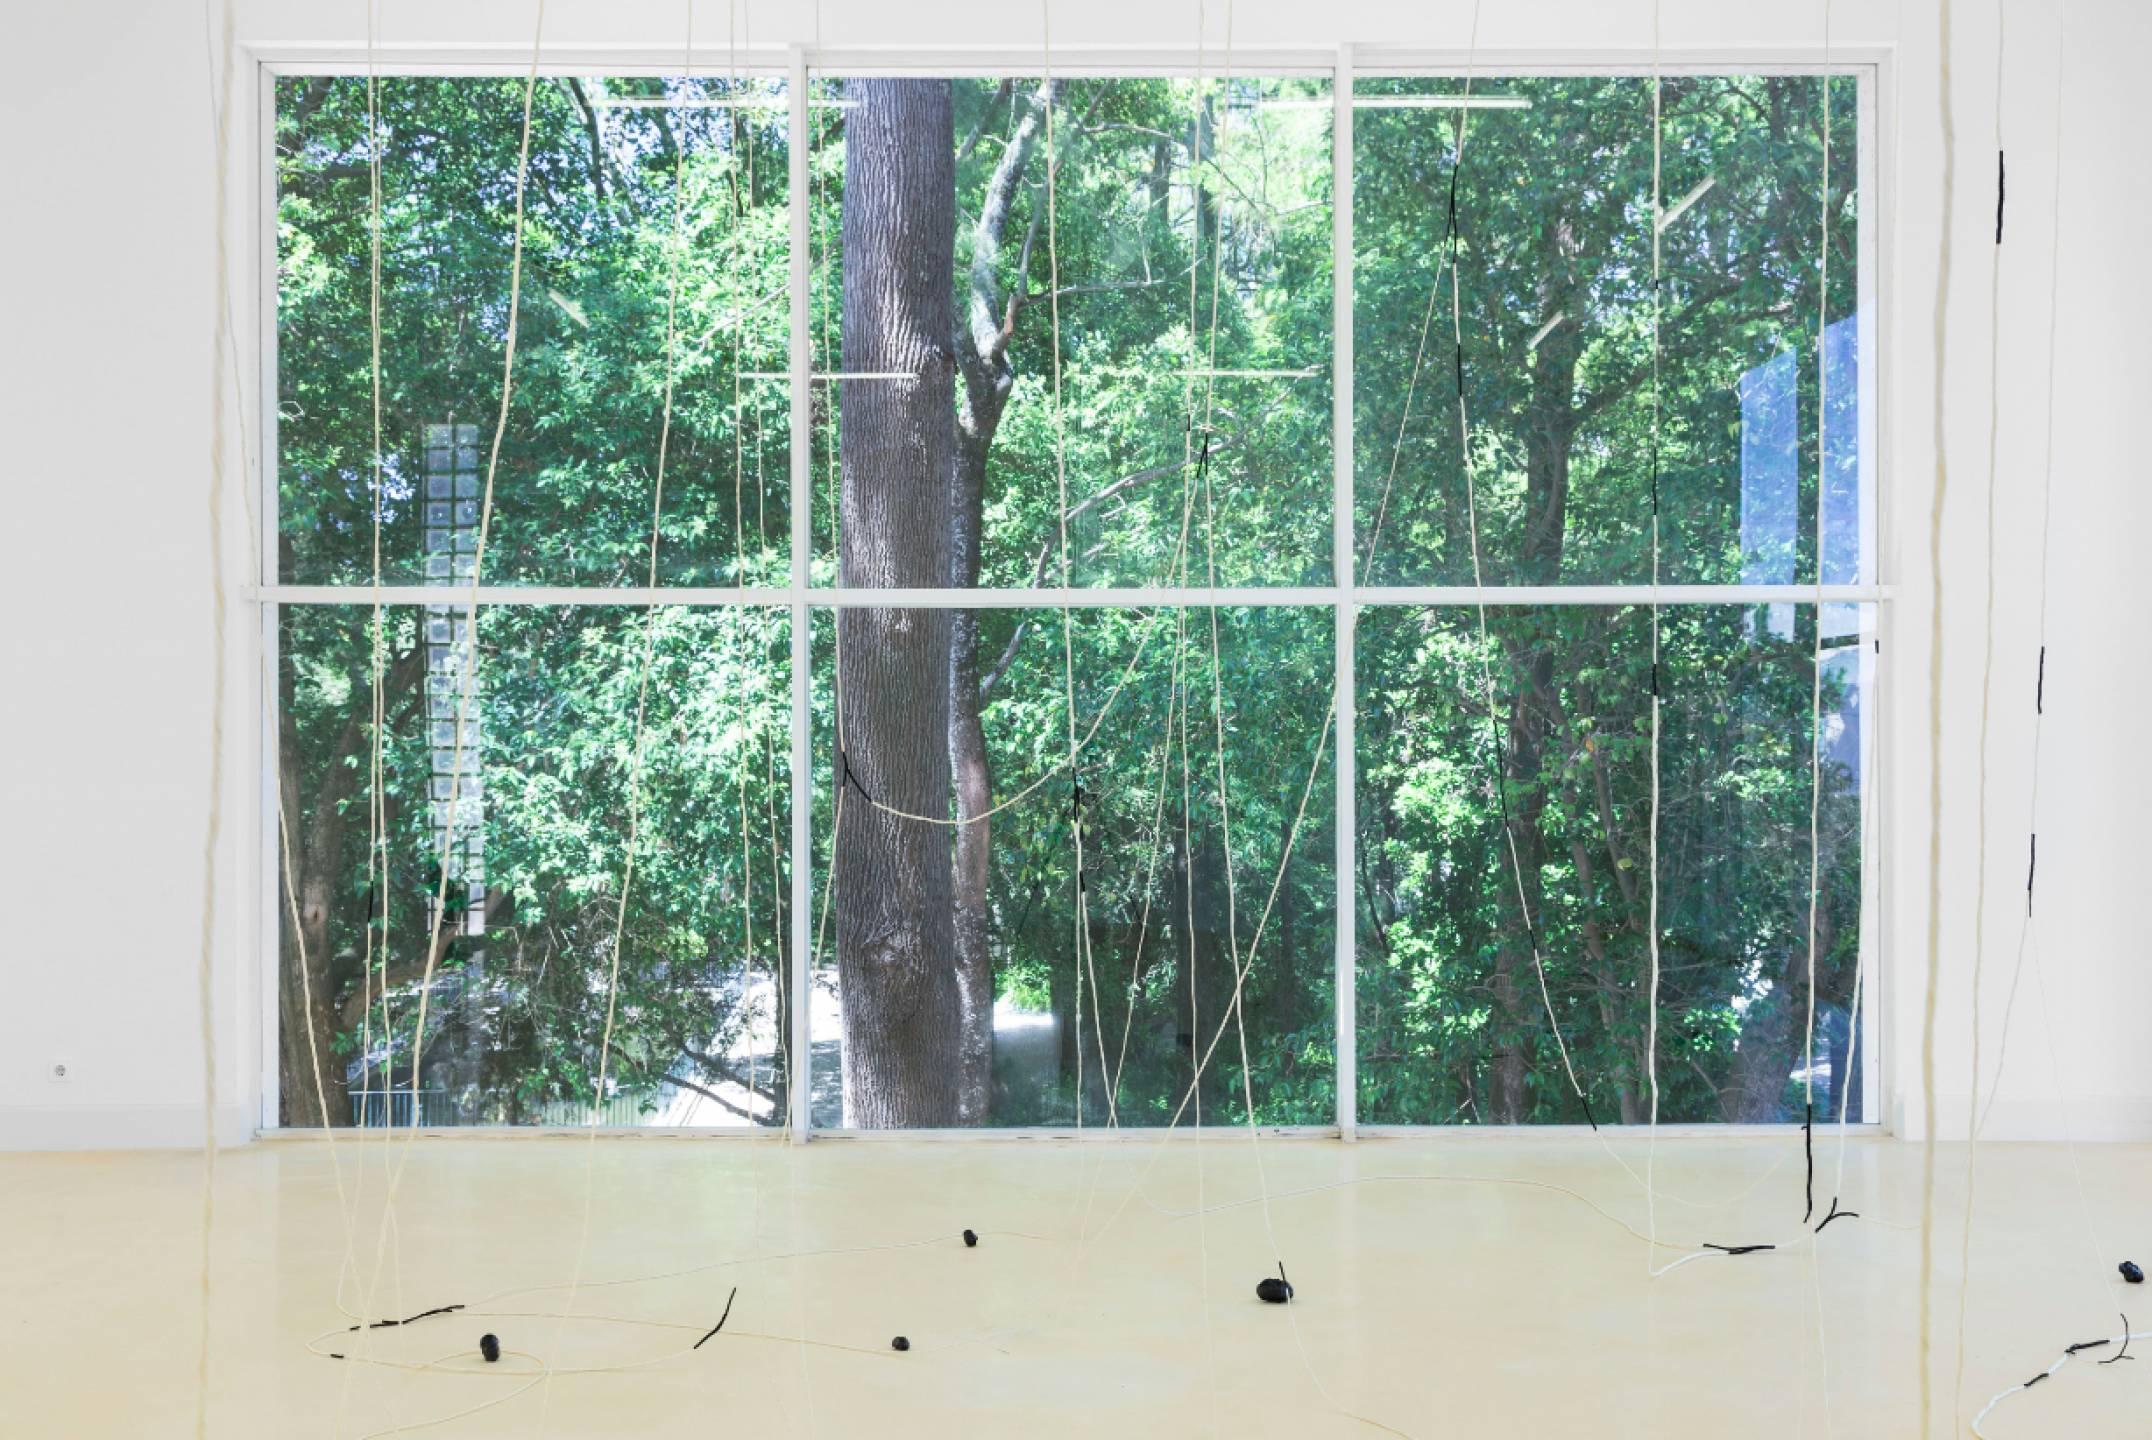 Paloma Bosquê,&nbsp;<em>The Hollow and The Seam,</em> Pavilhão Branco – Museu da Cidade, Lisbon, 2017 - Mendes Wood DM